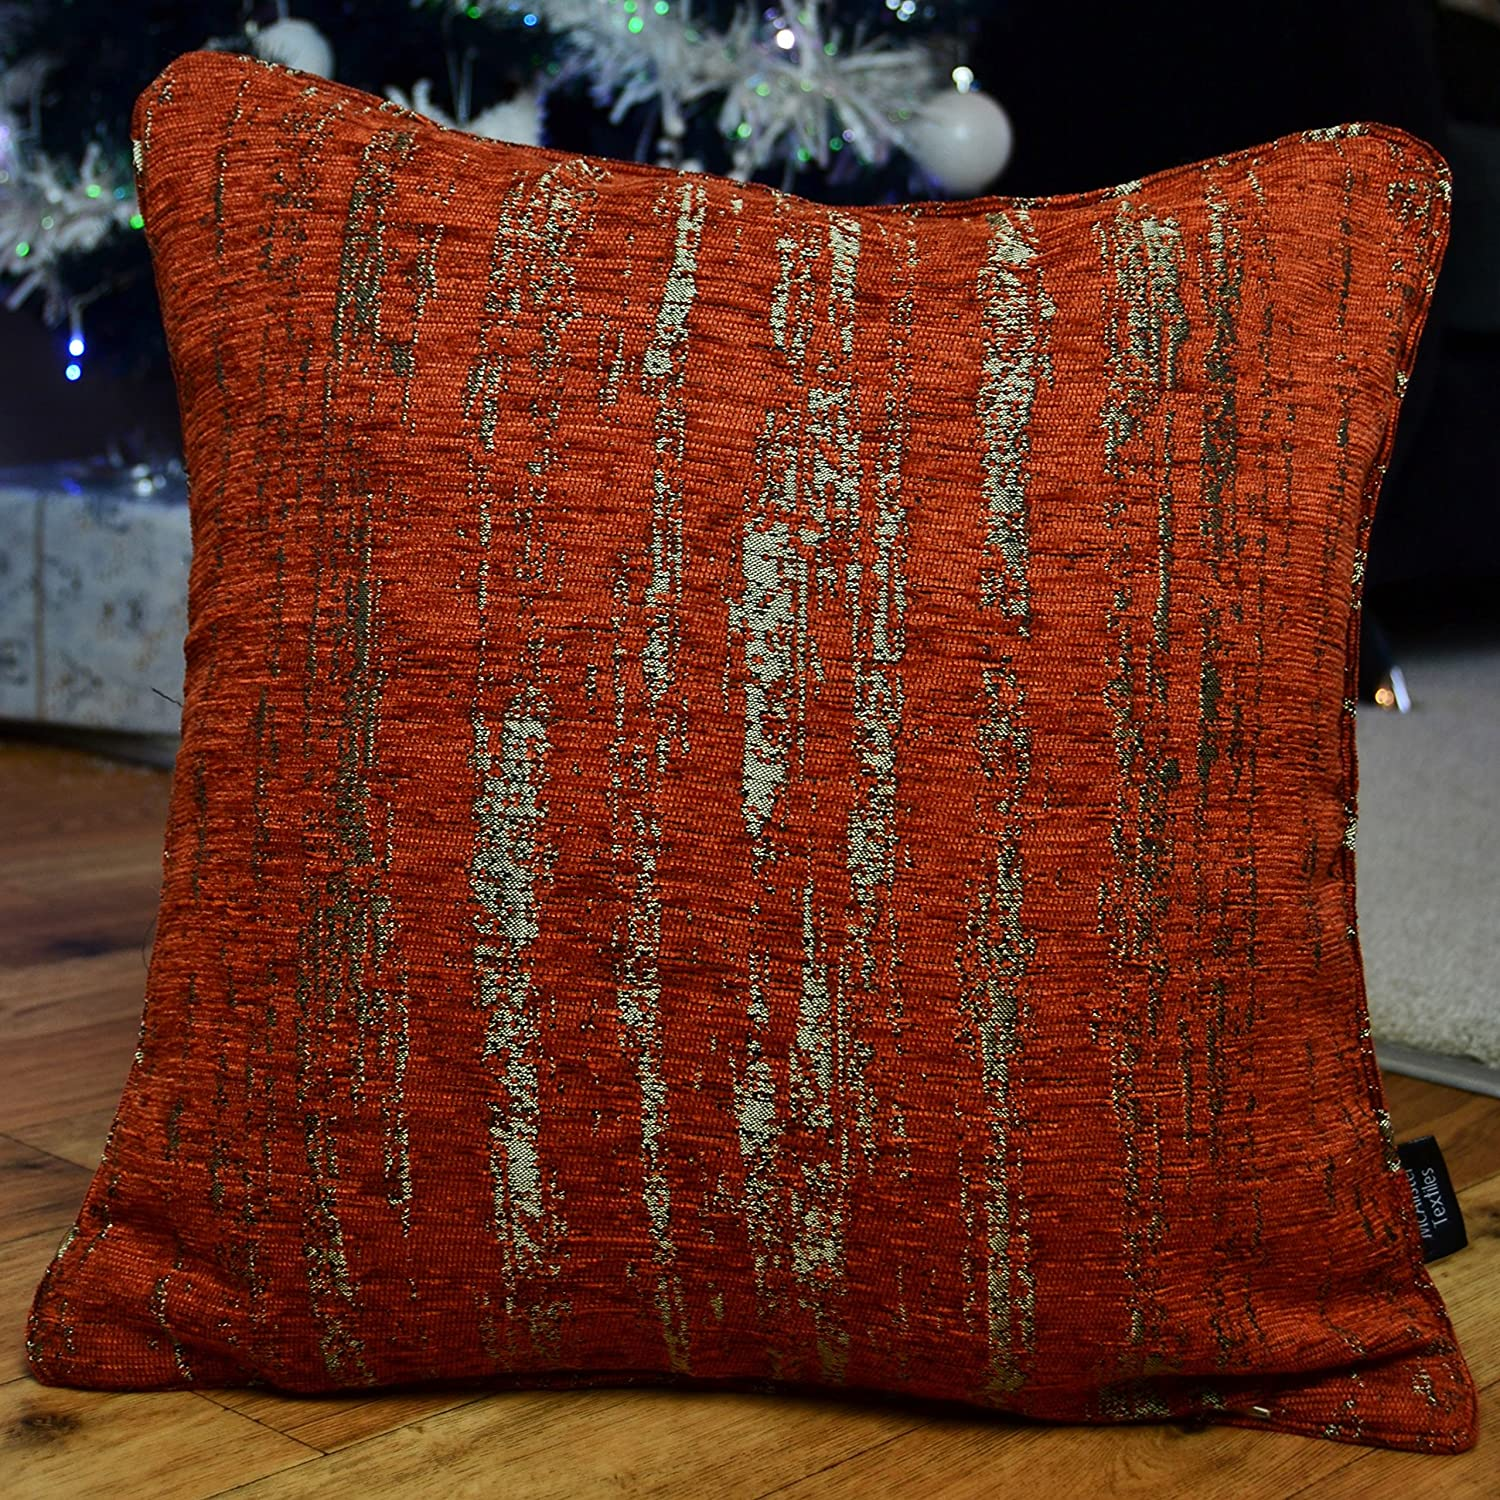 McAlister Textiles Textured Chenille Pillow Case | Burnt Orange Metalic  Striped Pattern Bedroom Decor Throw Couch Cushion for Bedroom Sofa Living  Room ...